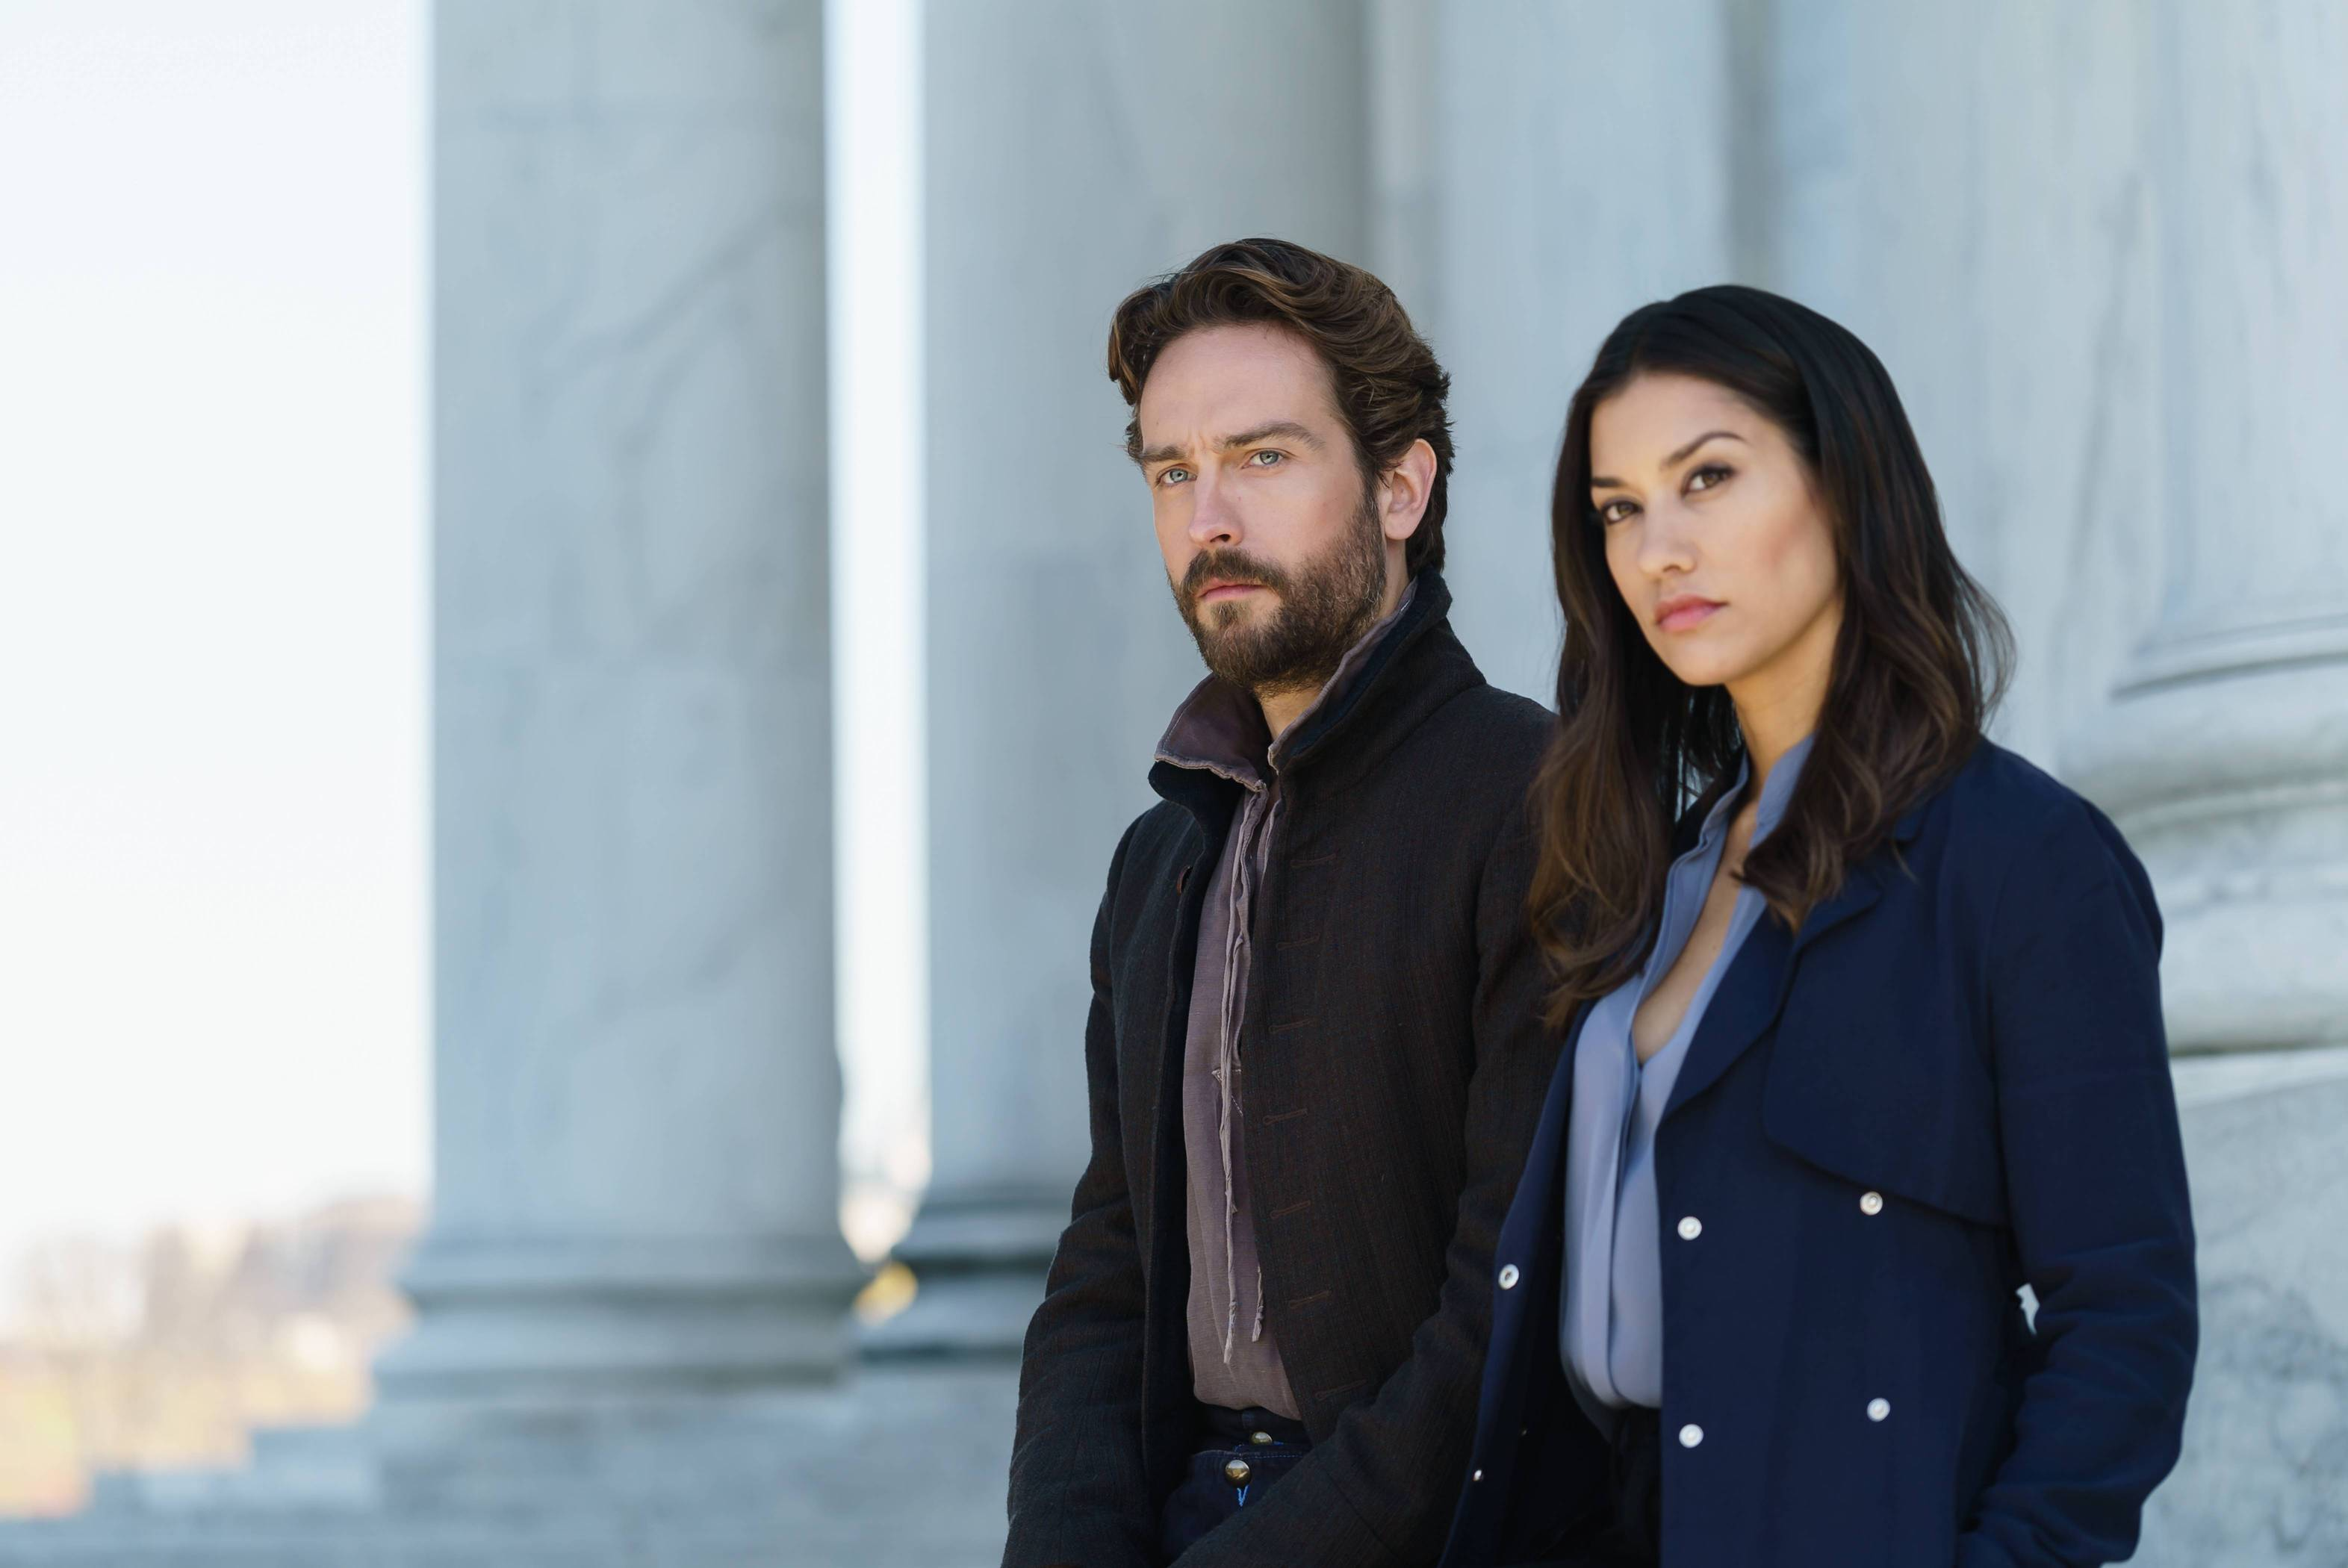 Sleepy 401 SCN42 TR0217 f hires1 - The Weirdness Begins in this Preview of Sleepy Hollow Season 4